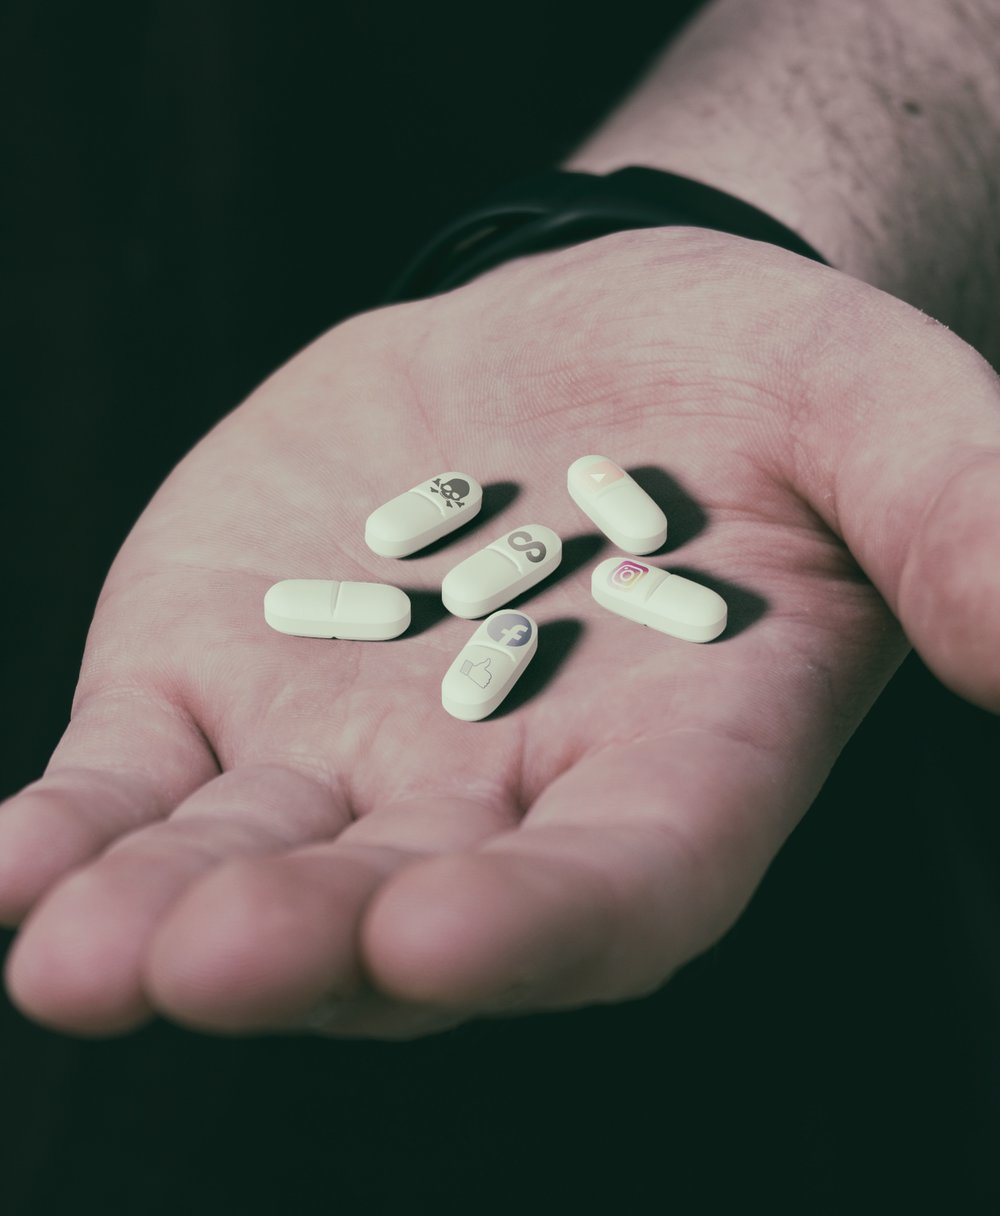 Before taking antidepressants, make sure to consult with your doctor first to determine the dosage you need to take.